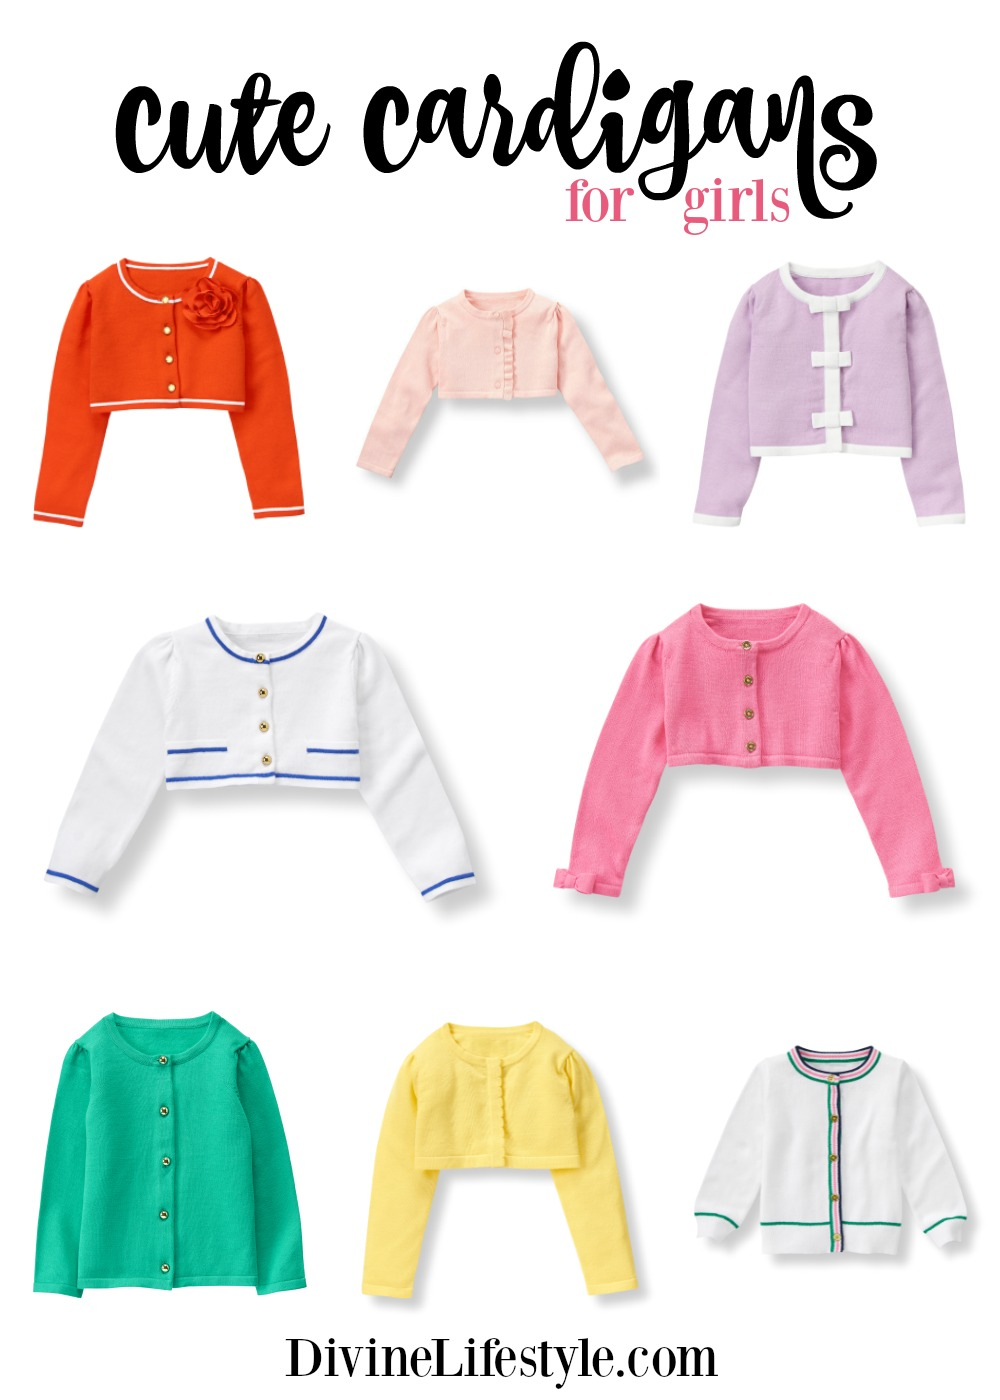 Cute Cardigans for Girls